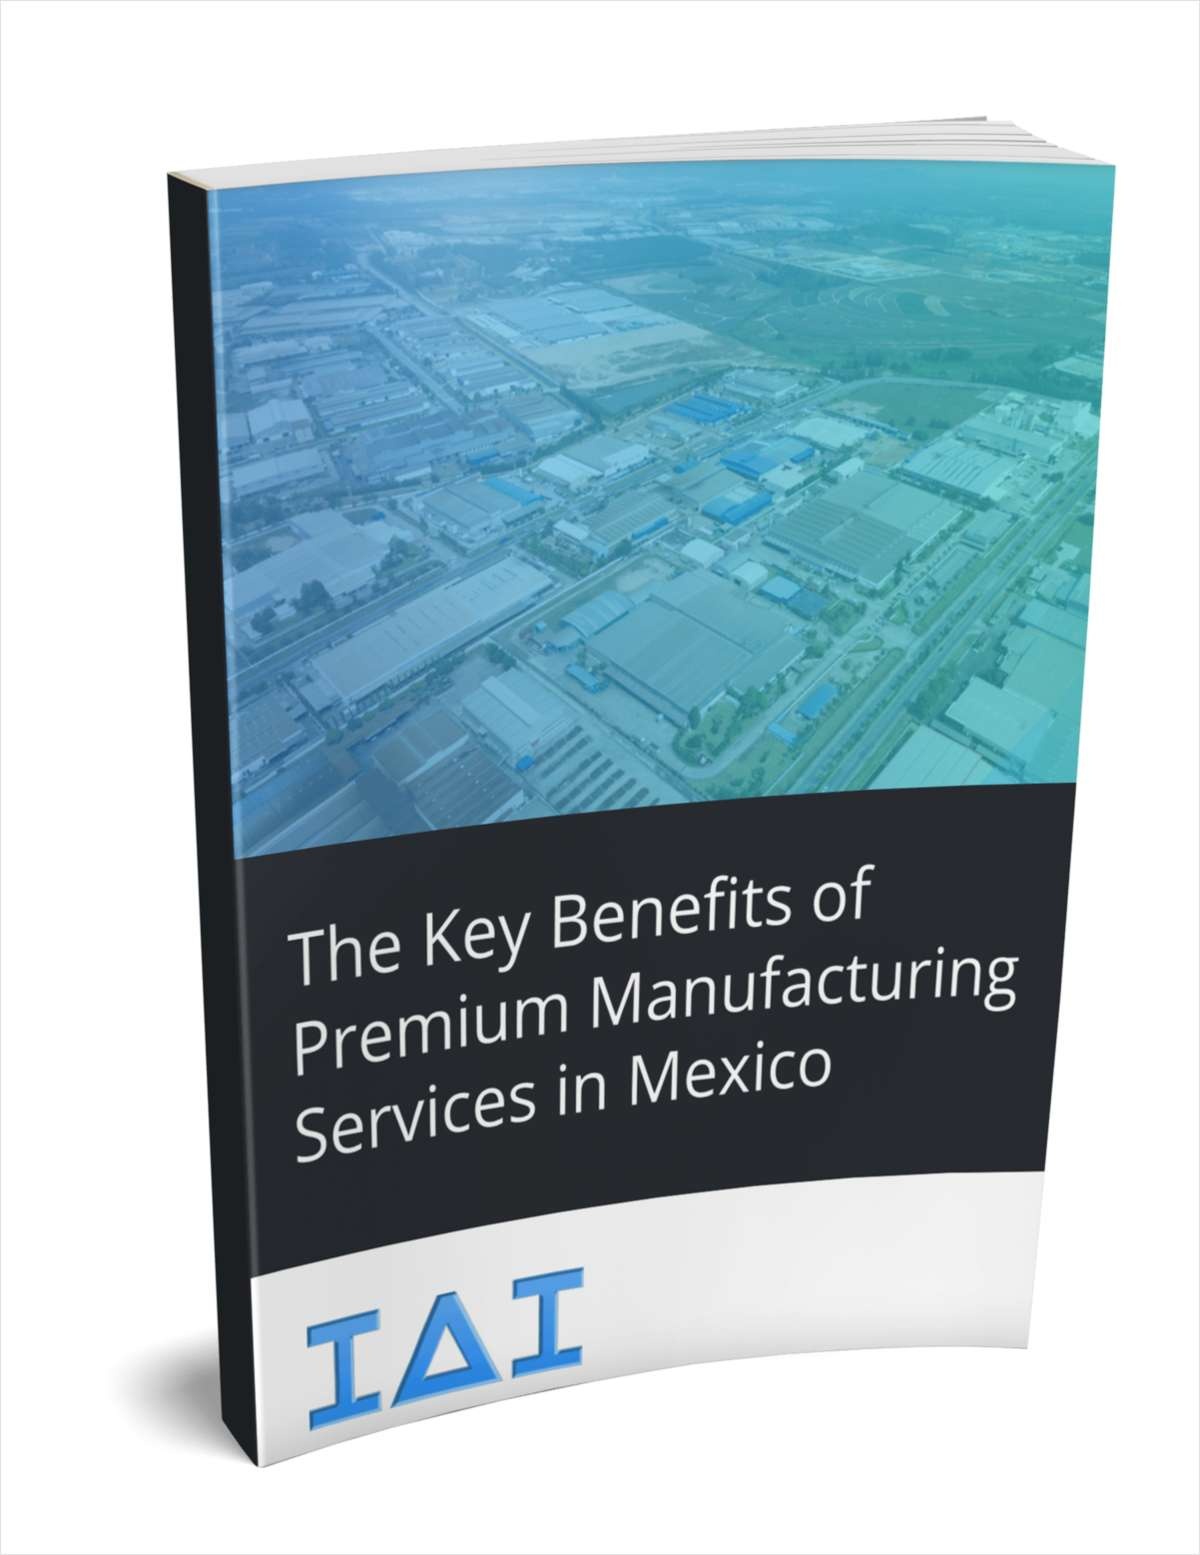 The Key Benefits of Premium Manufacturing Services in Mexico